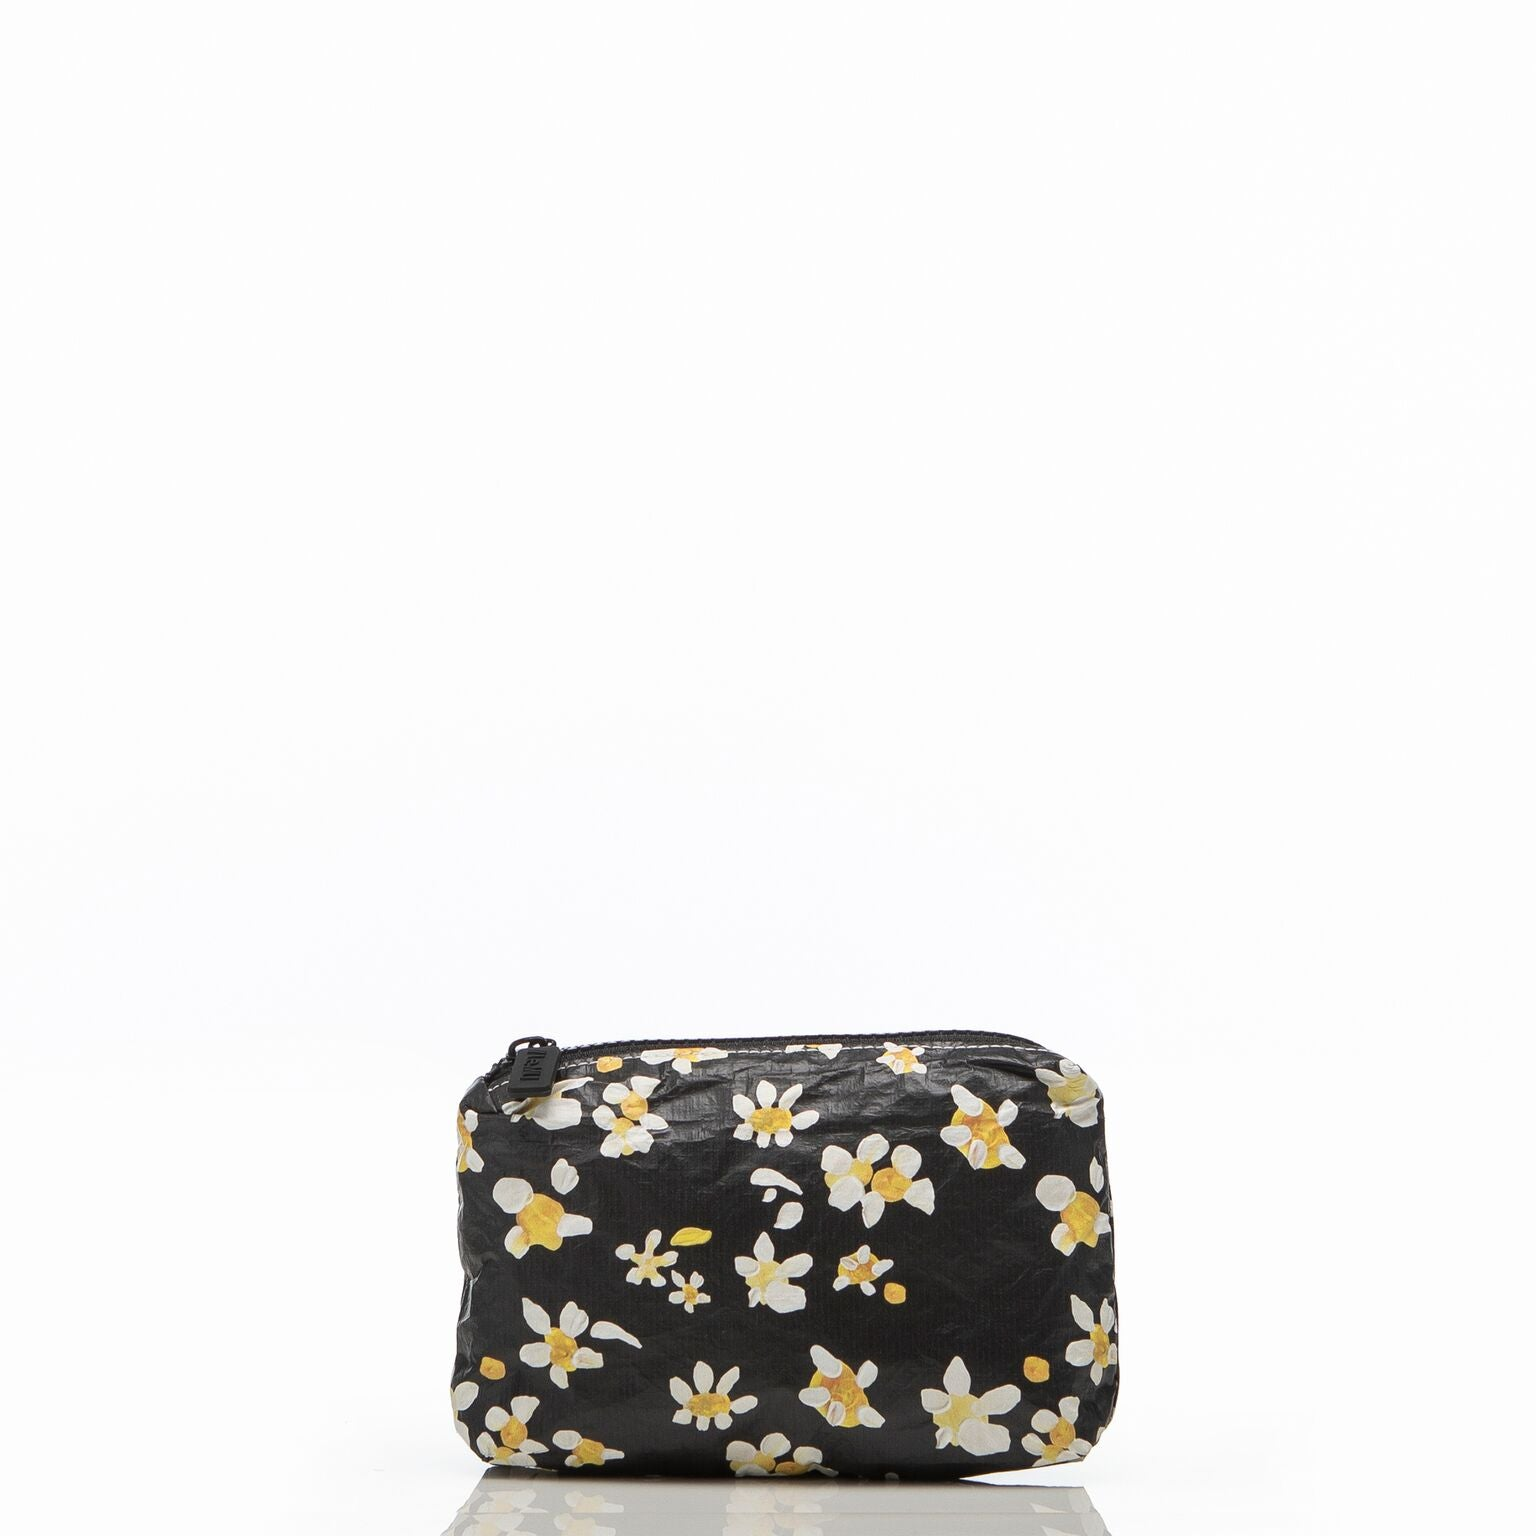 le mu - mini pouch - black daisy